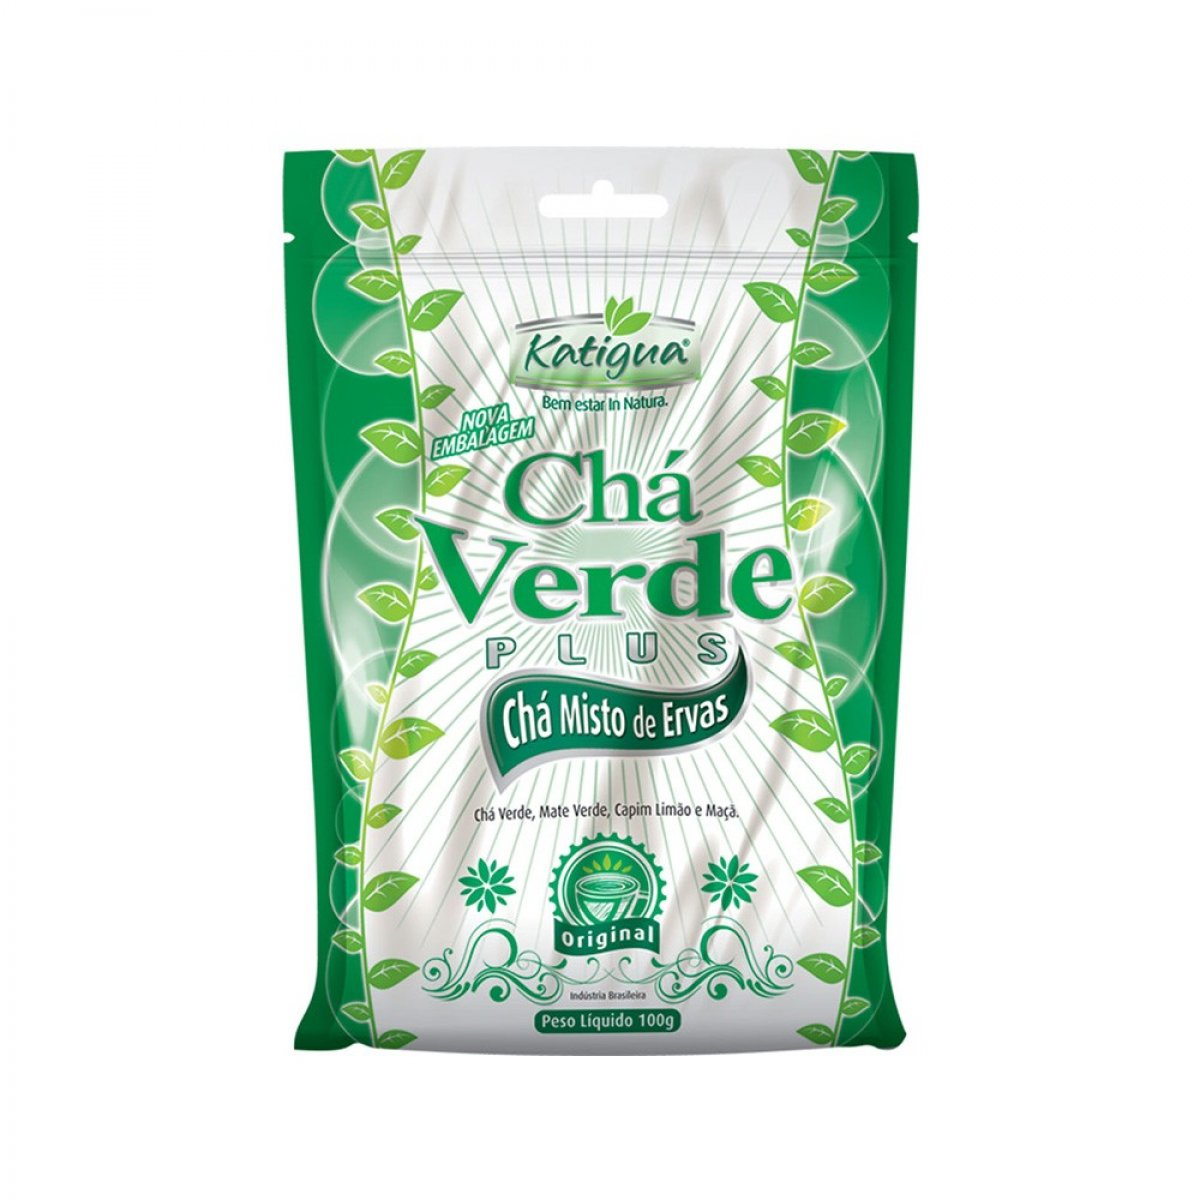 Chá Verde Plus -main